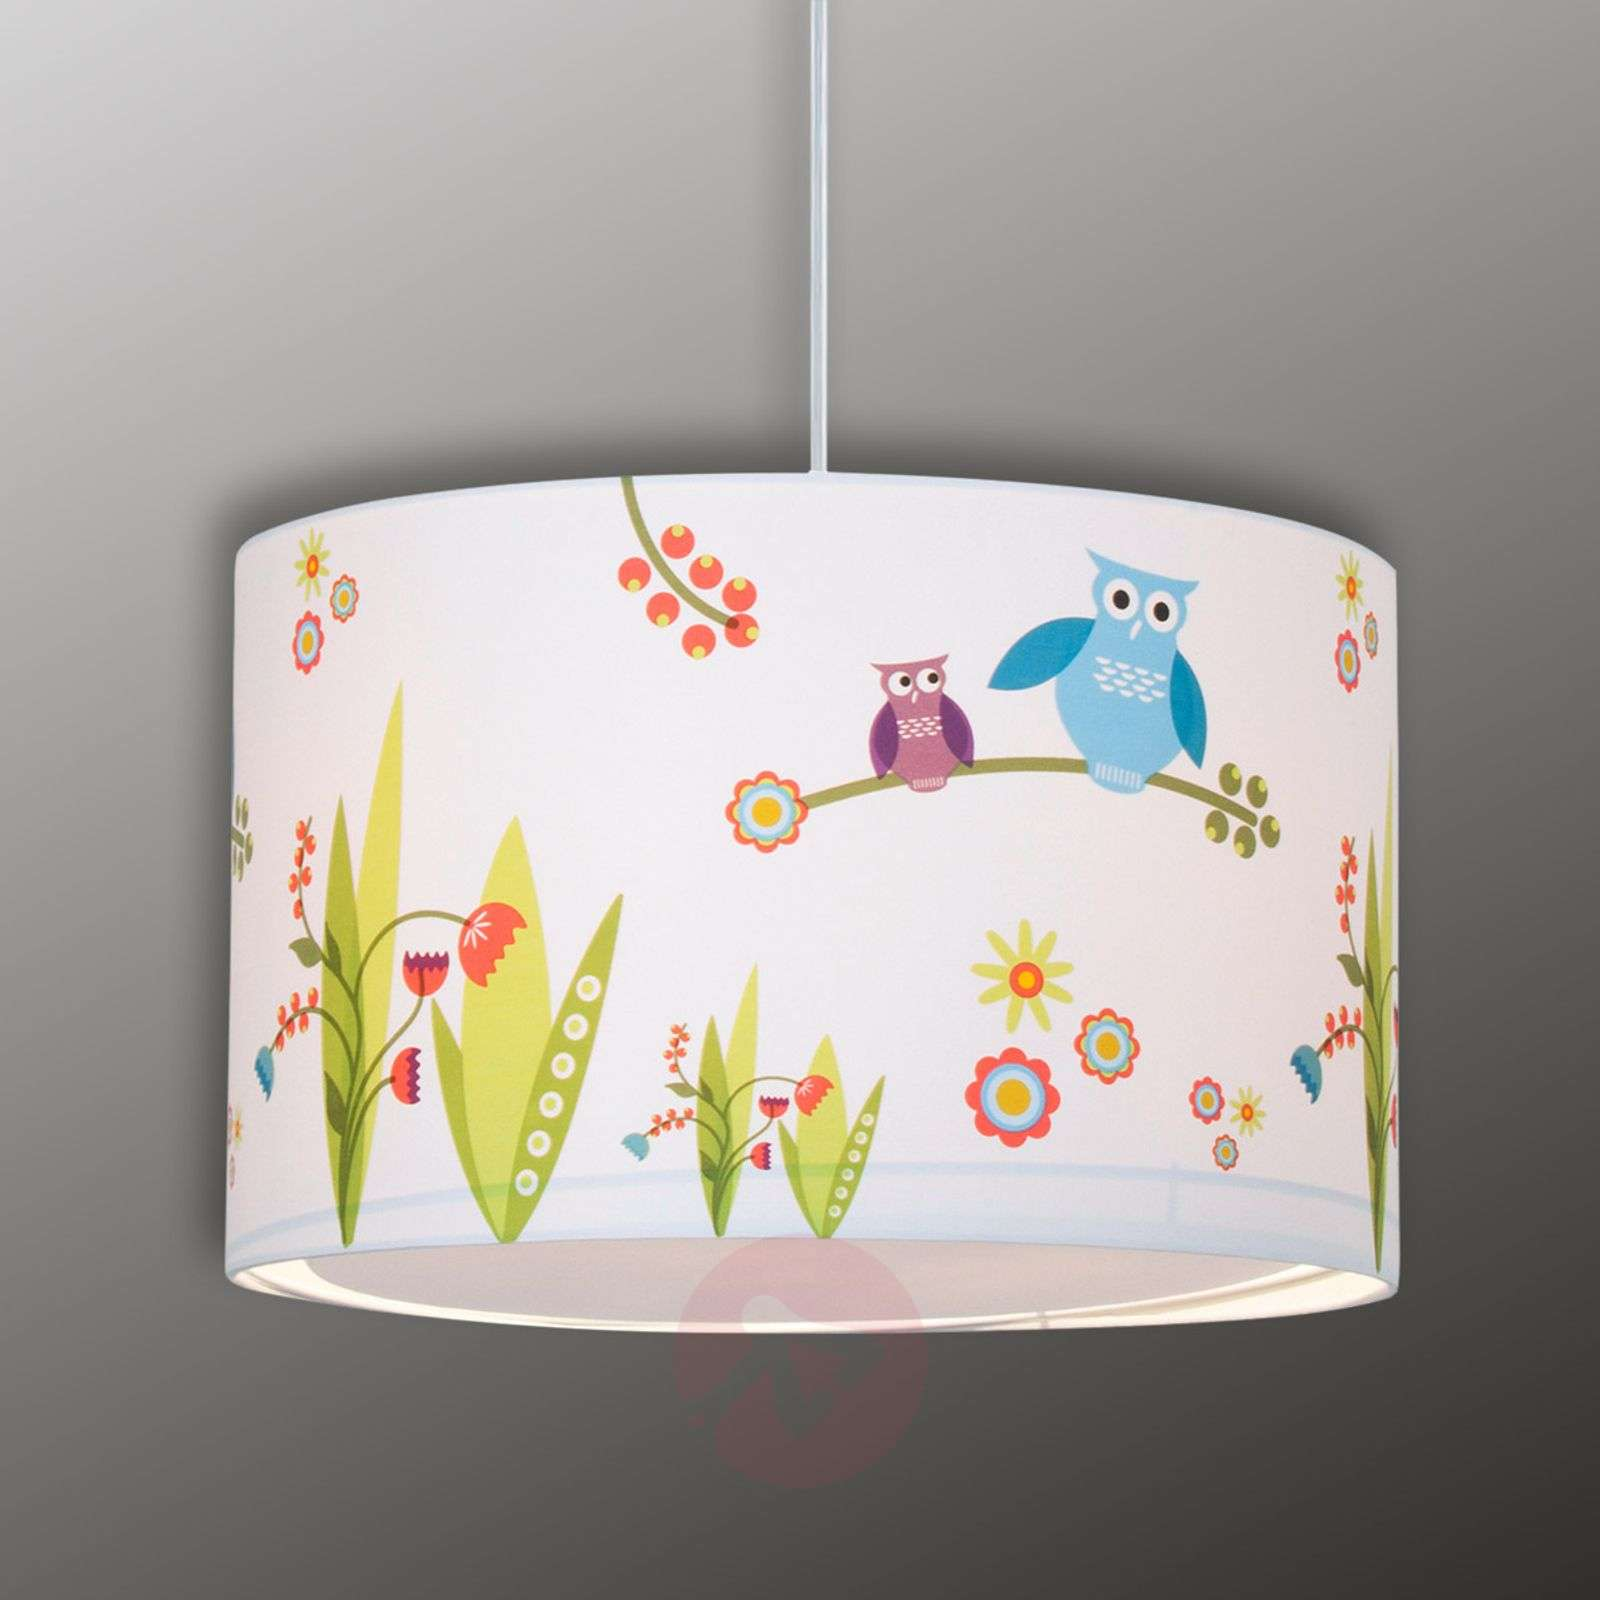 birds vrolijke kinderkamer hanglamp. Black Bedroom Furniture Sets. Home Design Ideas